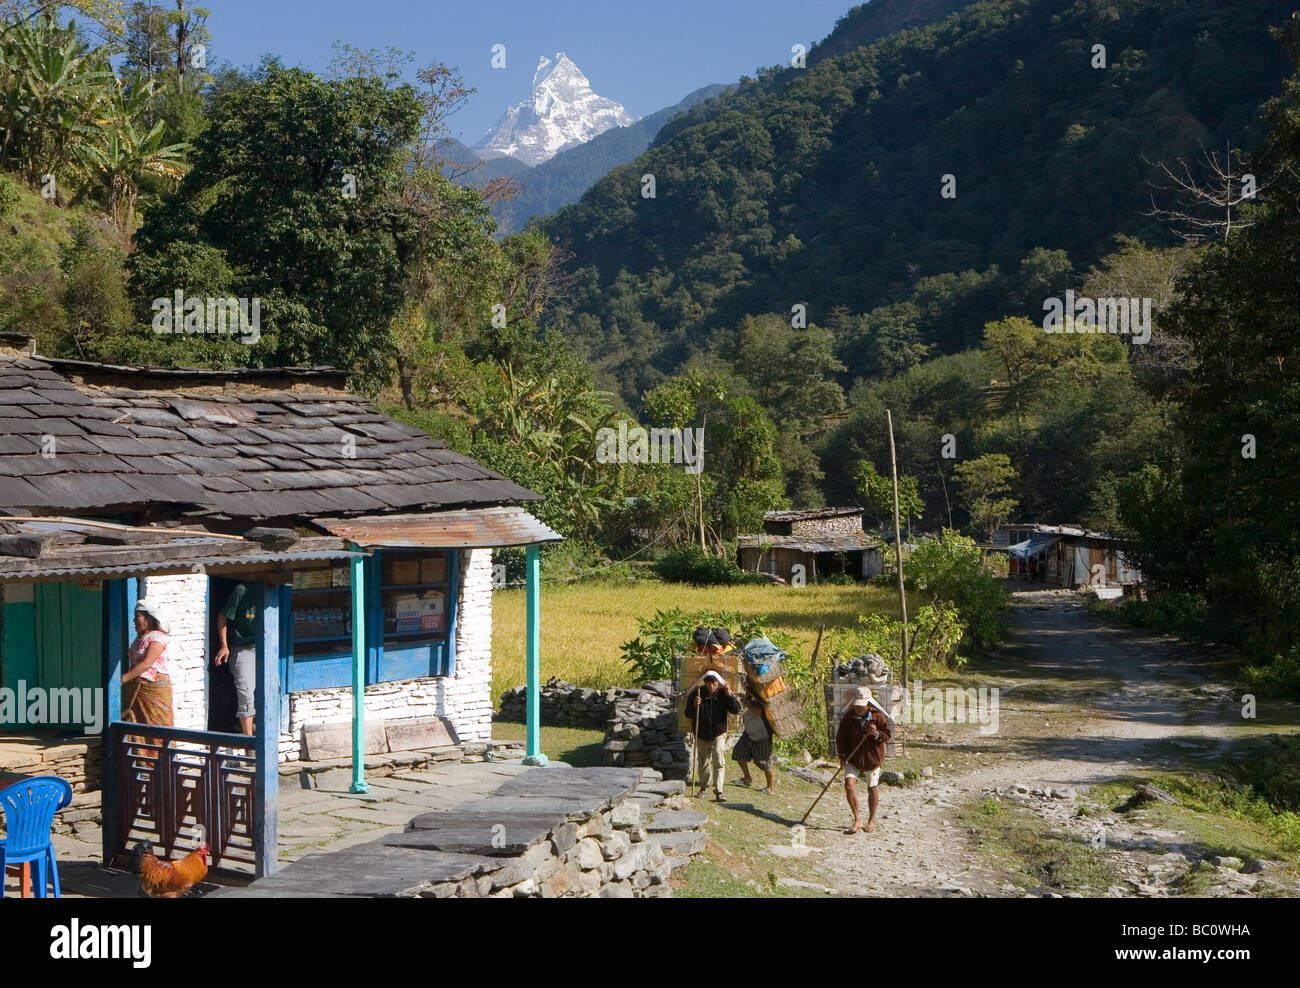 Porters trekking through the village of Shauli Bazaar with Machhapuchhare rising behind - Stock Image